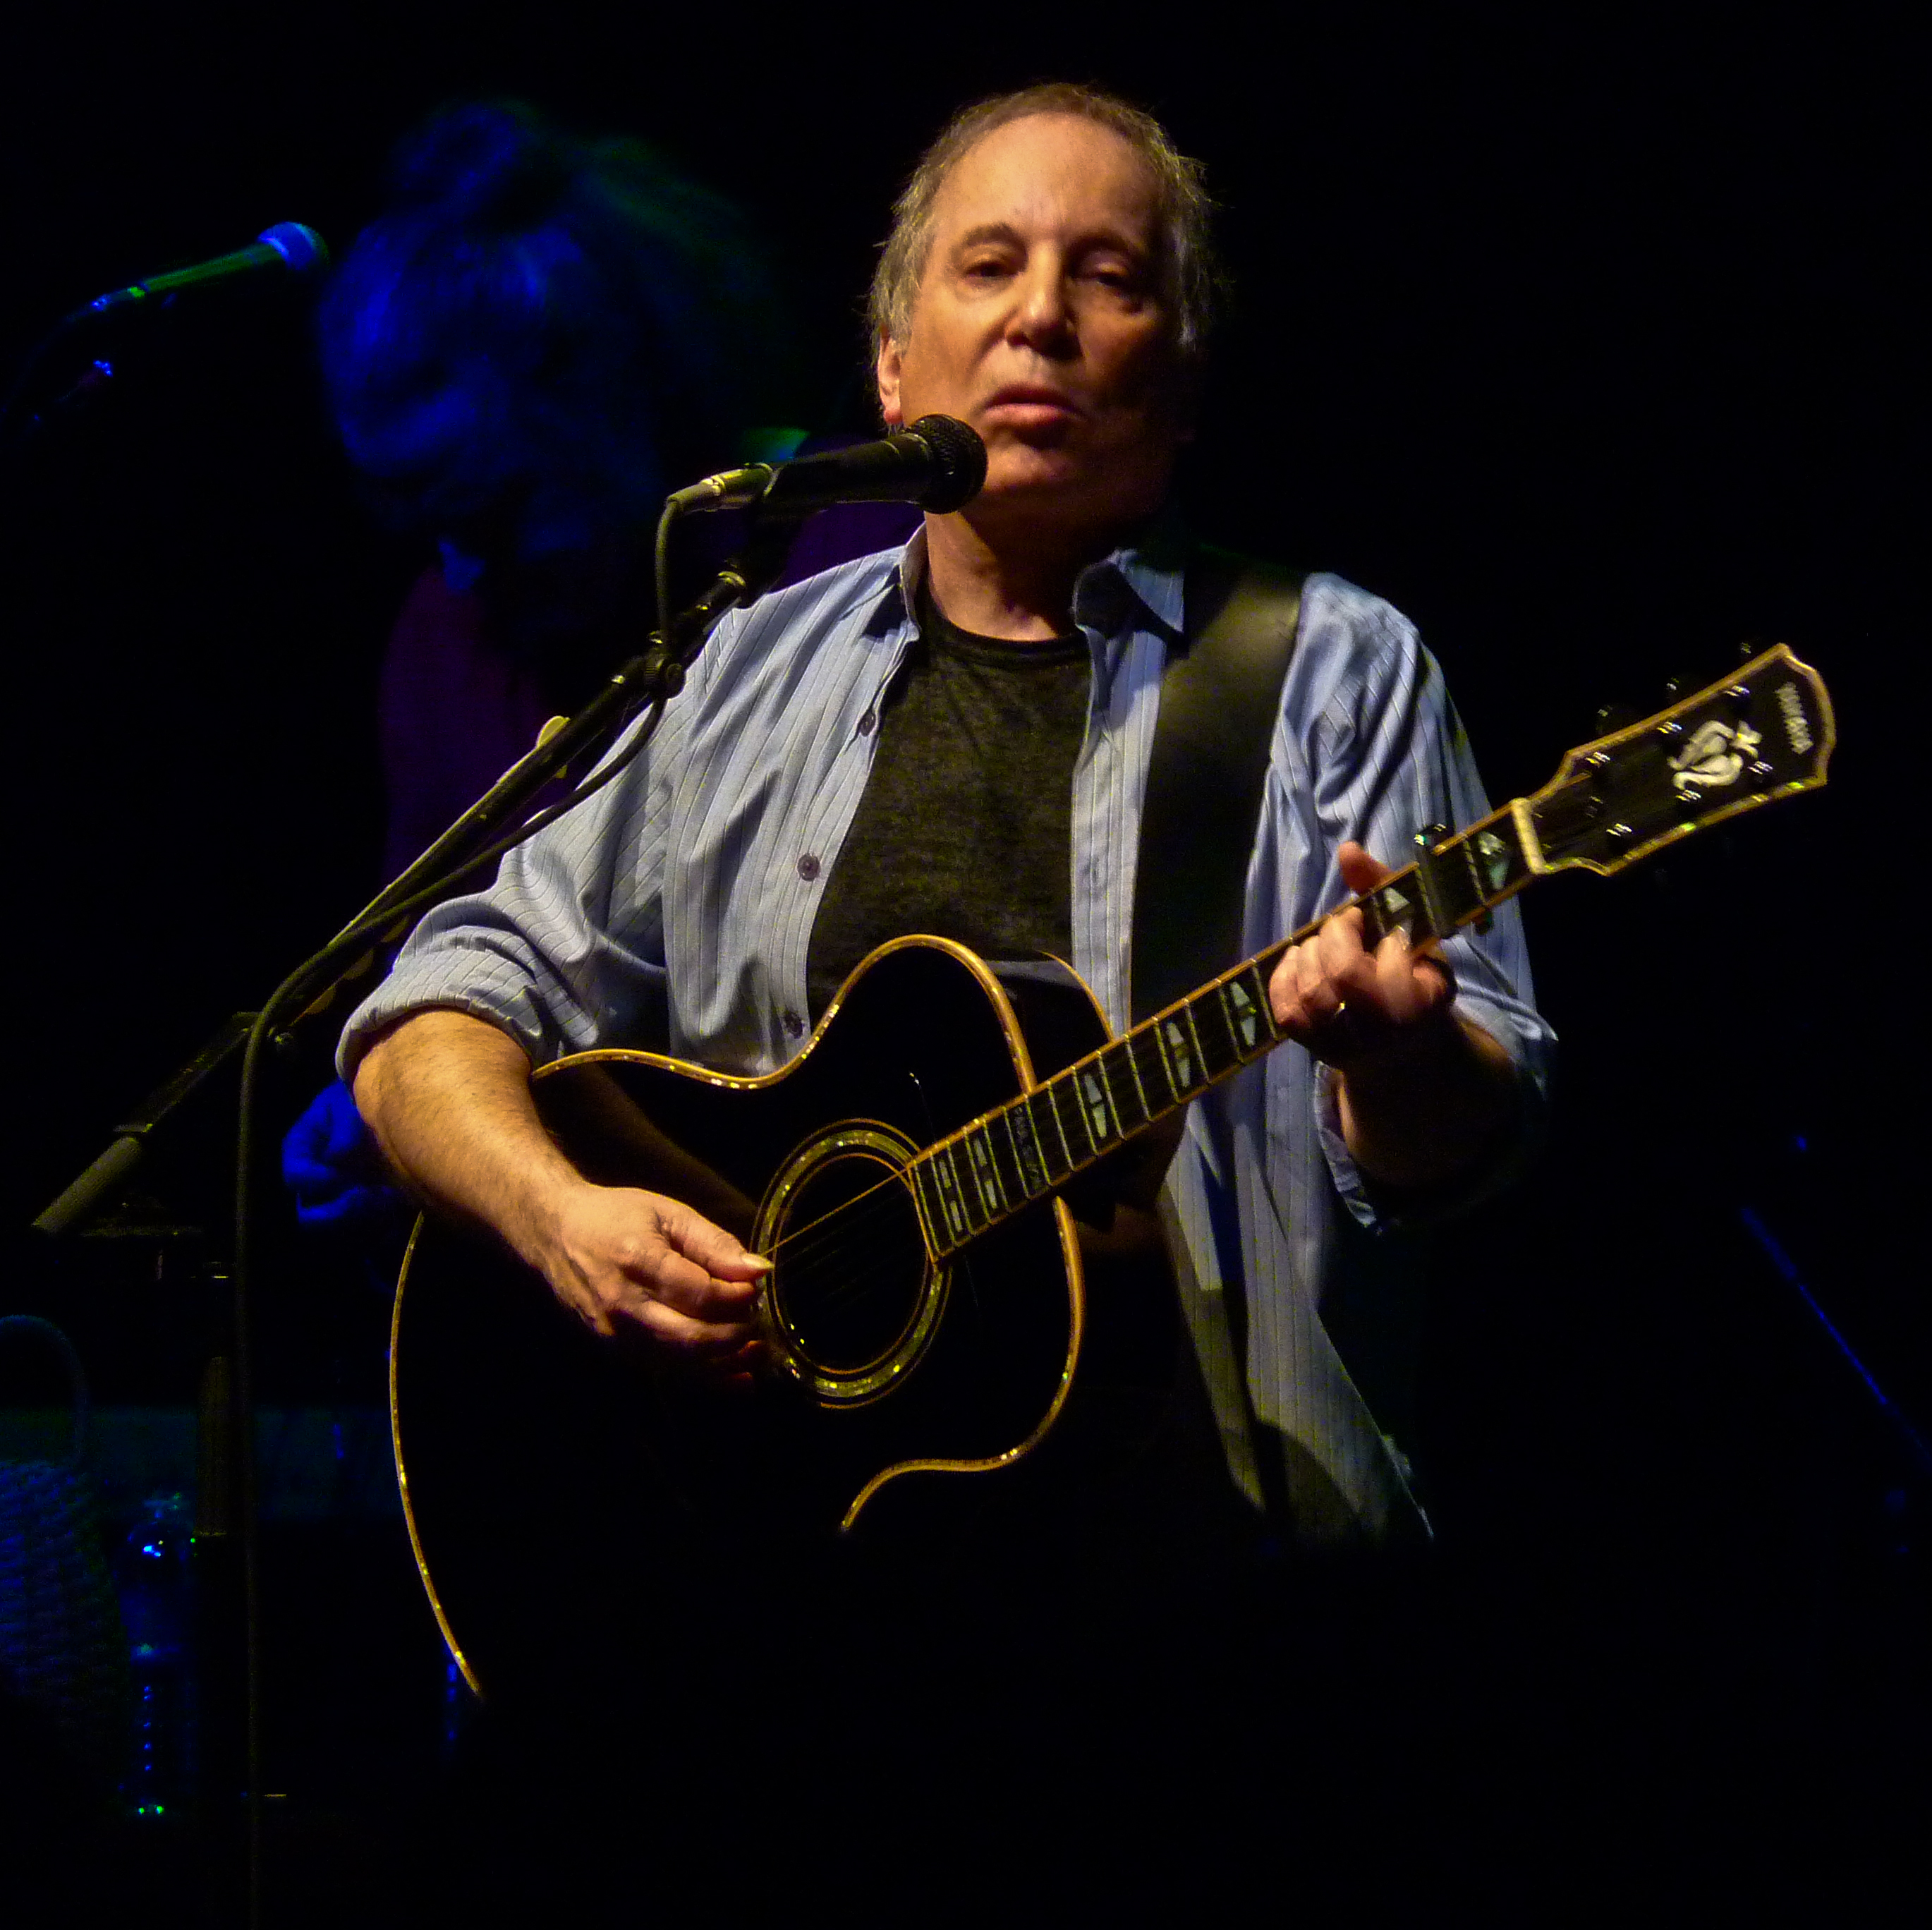 Simon performing at the [[9:30 Club]] on May 27, 2011